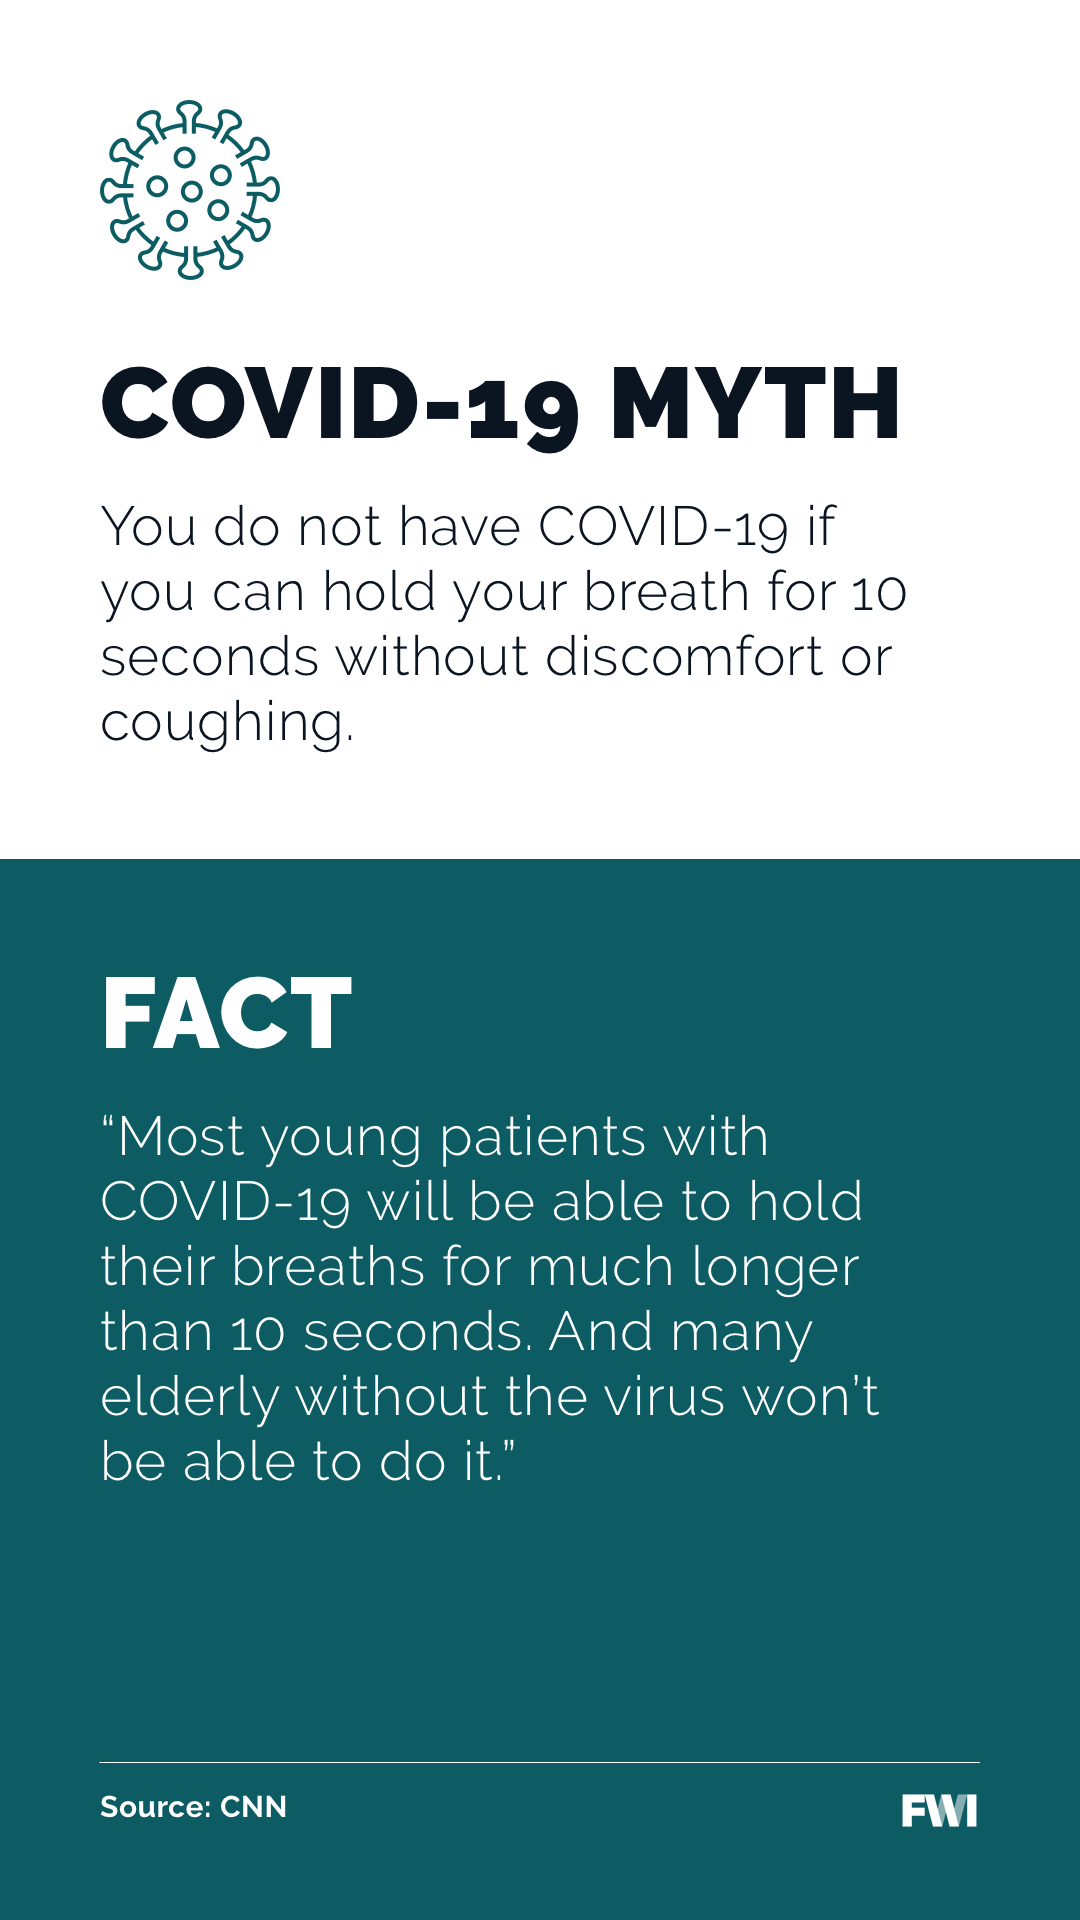 Facts about COVID symptoms vertical content download